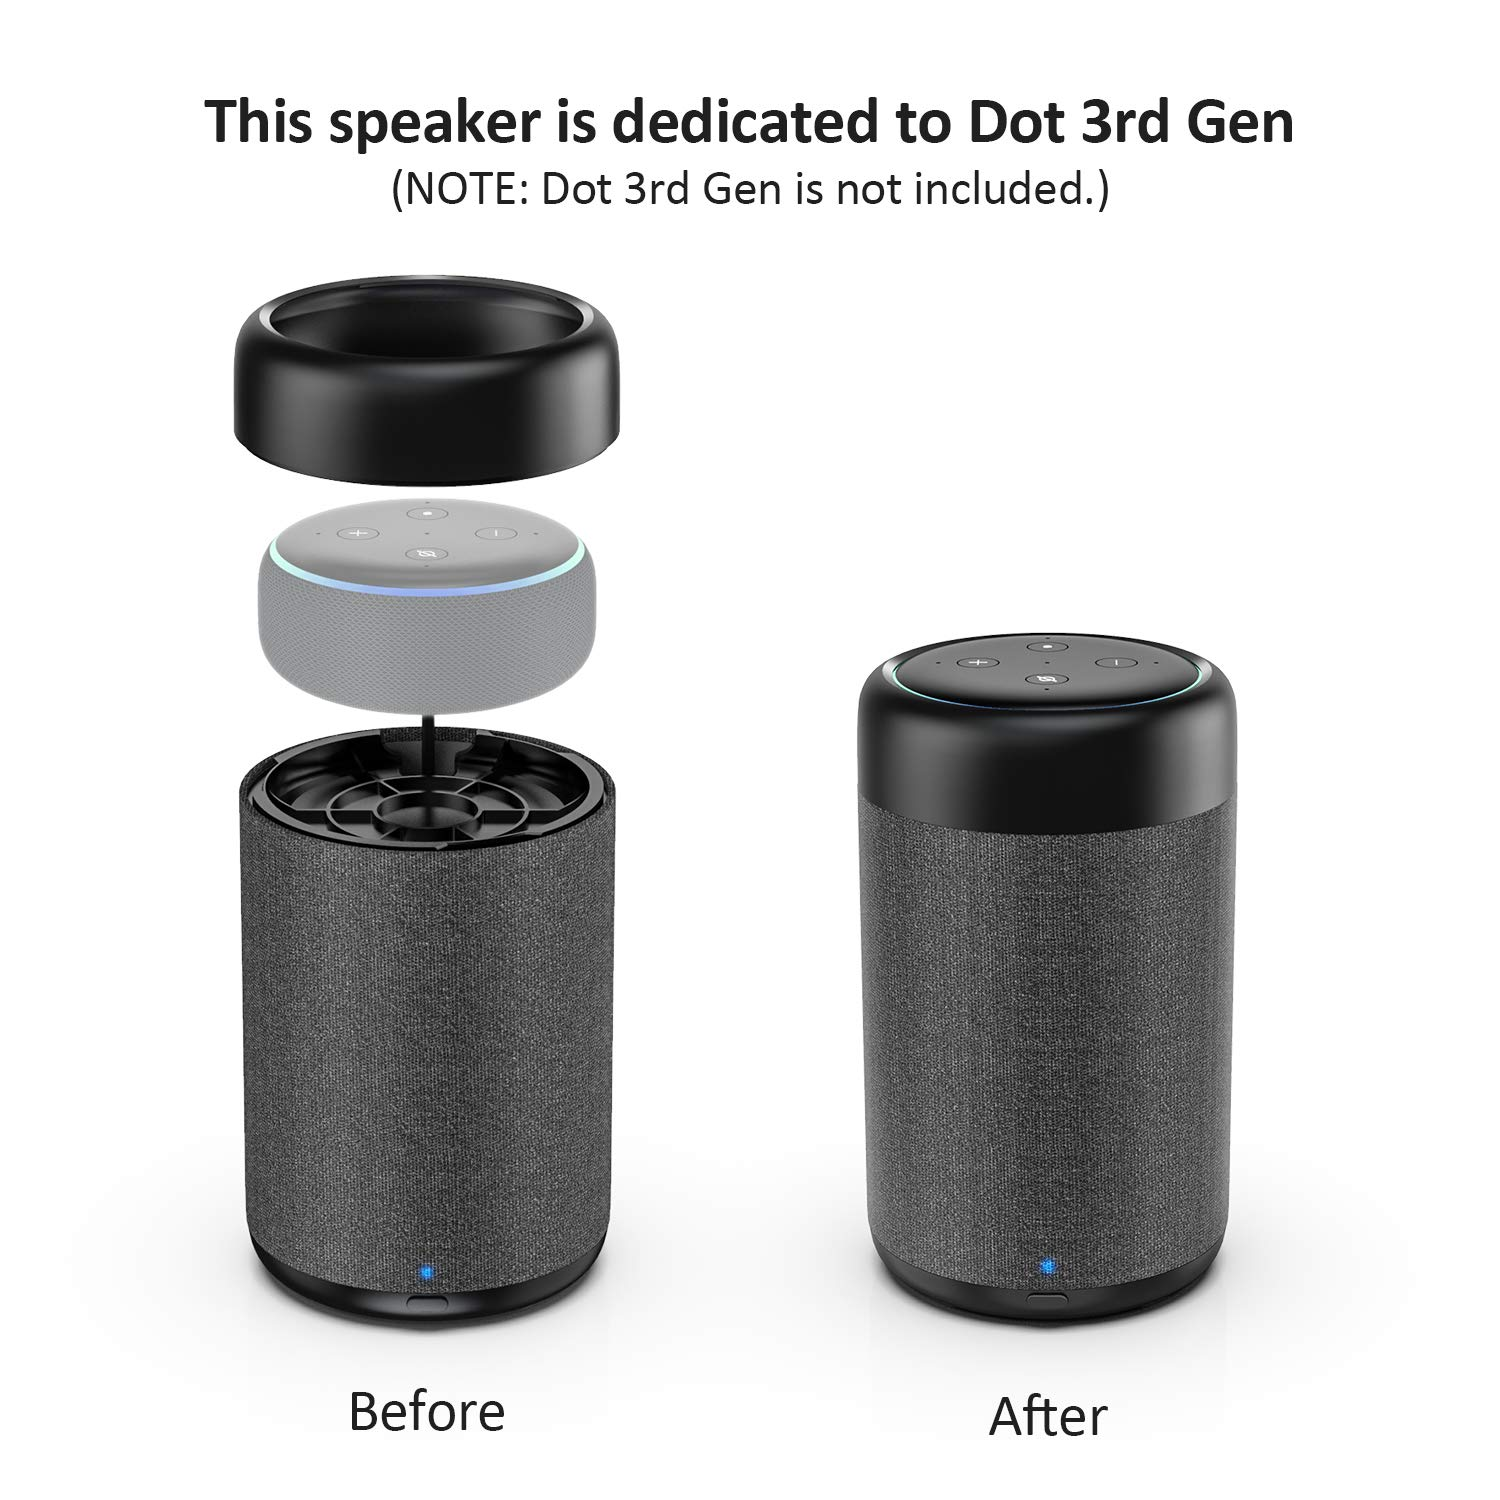 GGMM D7 Portable Speaker Dedicated for Dot 3rd Gen Battery Power Base Dot Not Included Black